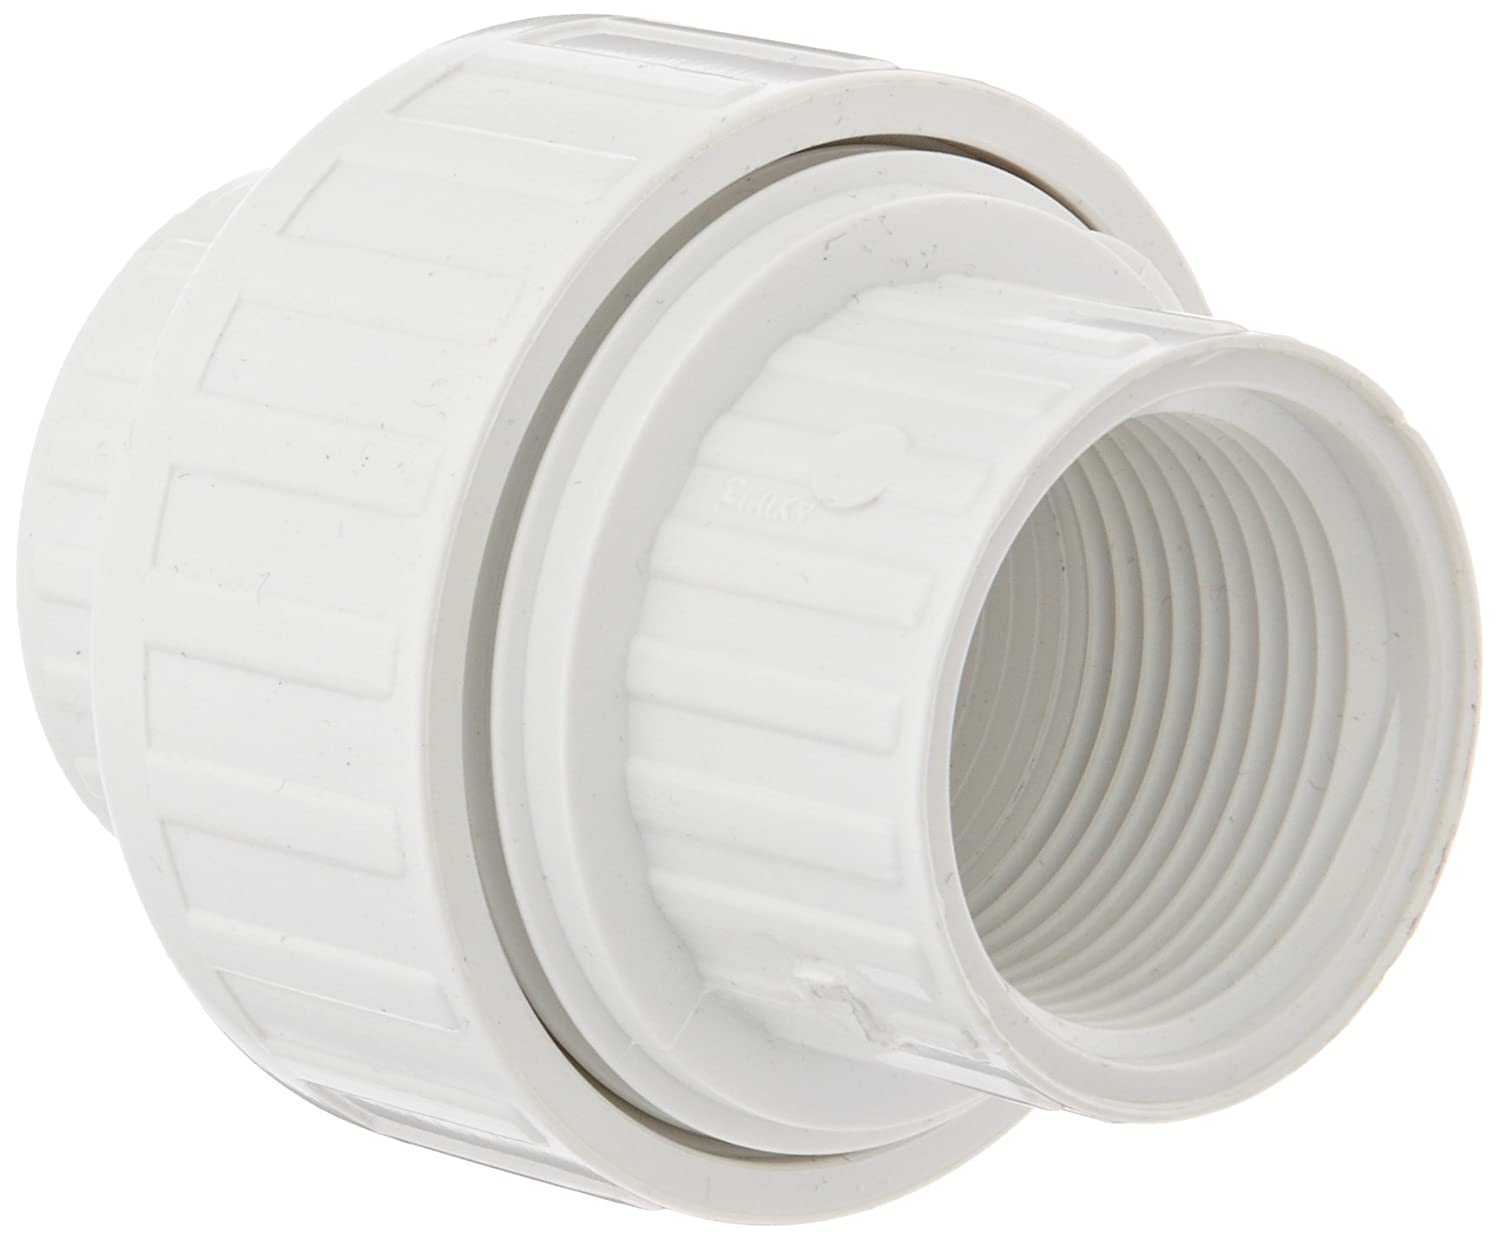 Spears 498 Series PVC Pipe Fitting, Union with EPDM O-Ring, Schedule 40, 1 NPT Female 1 NPT Female Spears Manufacturing 498-010